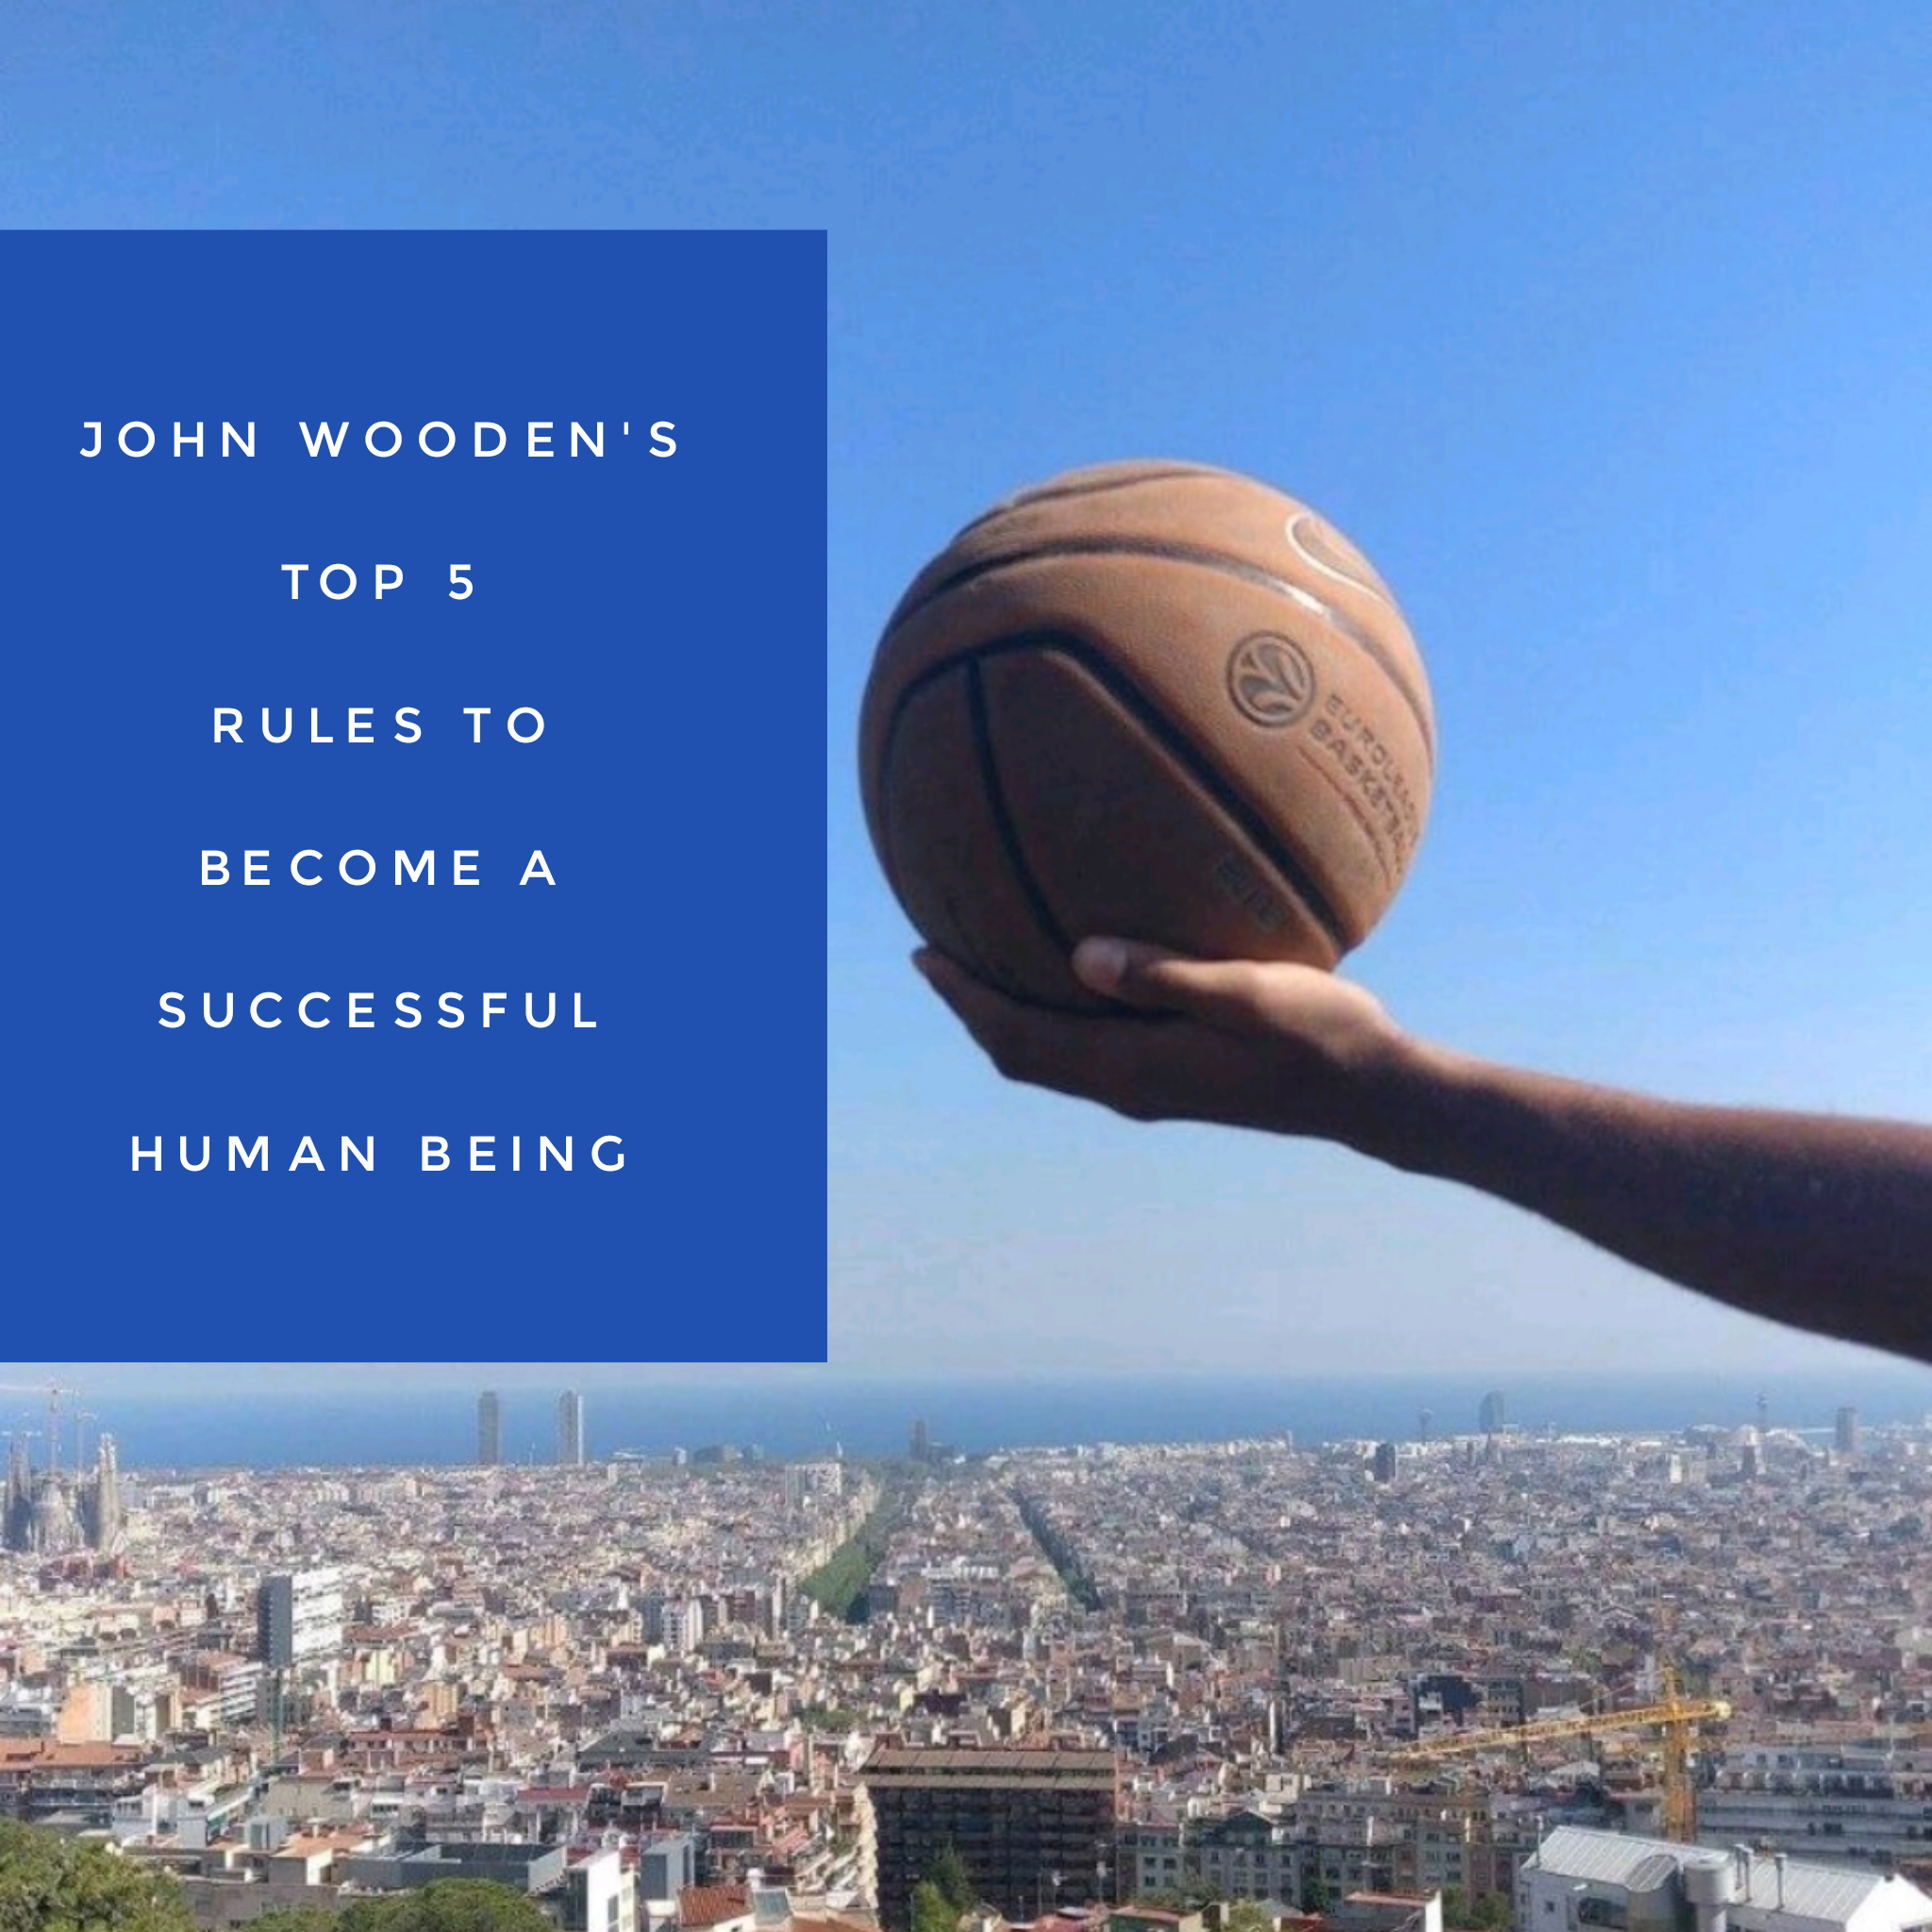 John Woodens Top 5 Rules To Become A Successful Human Being Jan